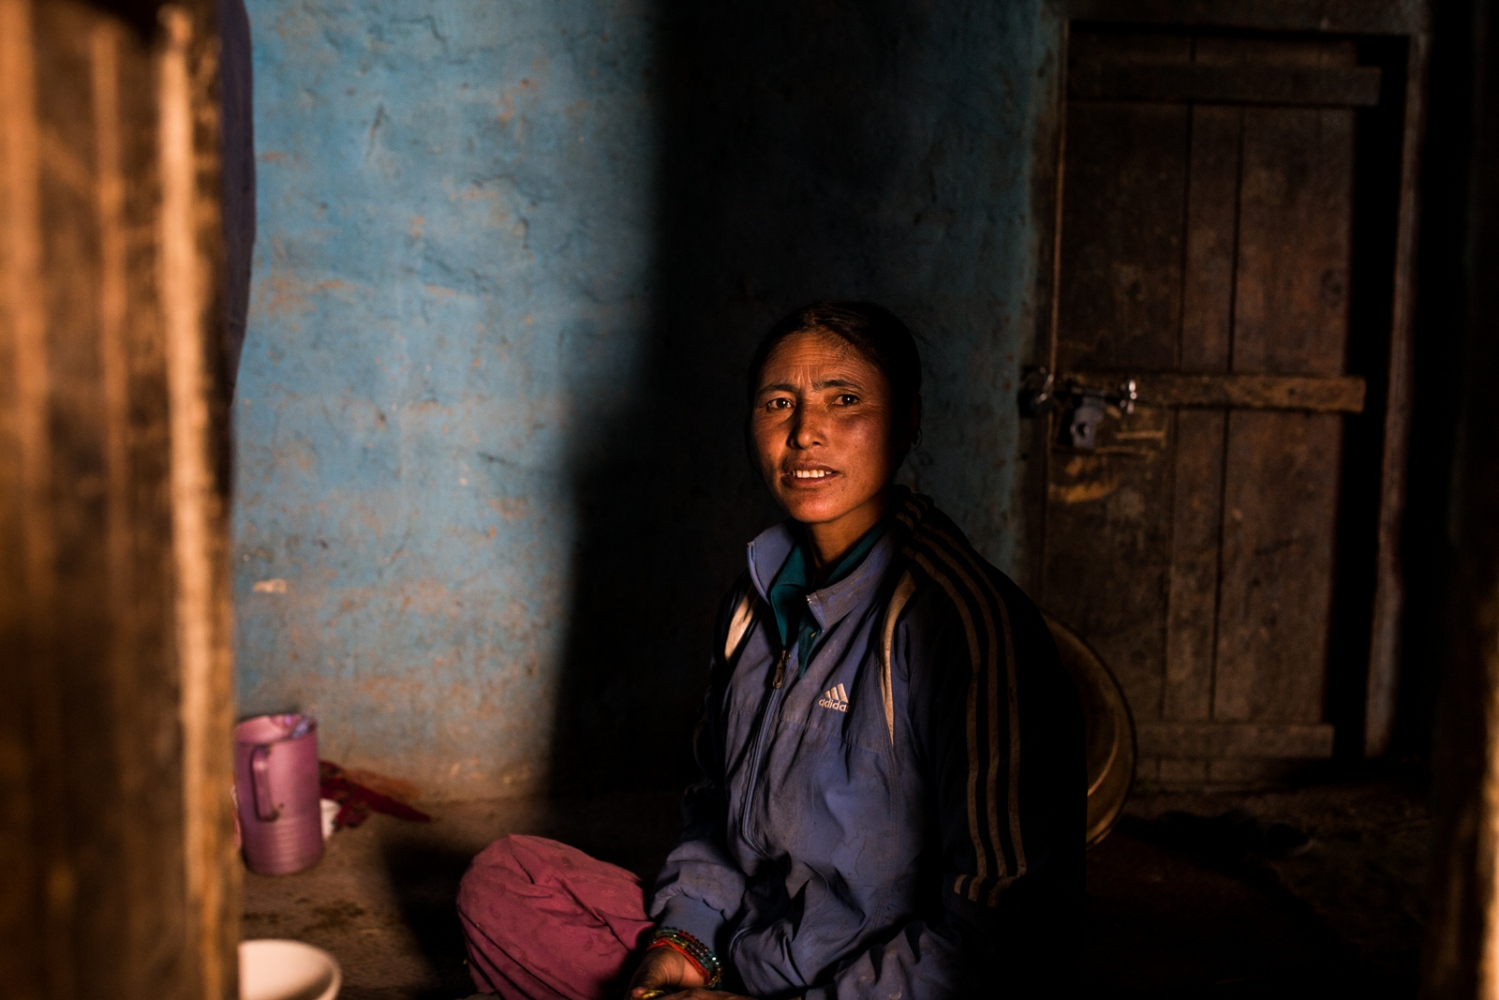 Tsewang Zangmo ponders in her home after a day's work in the fields.